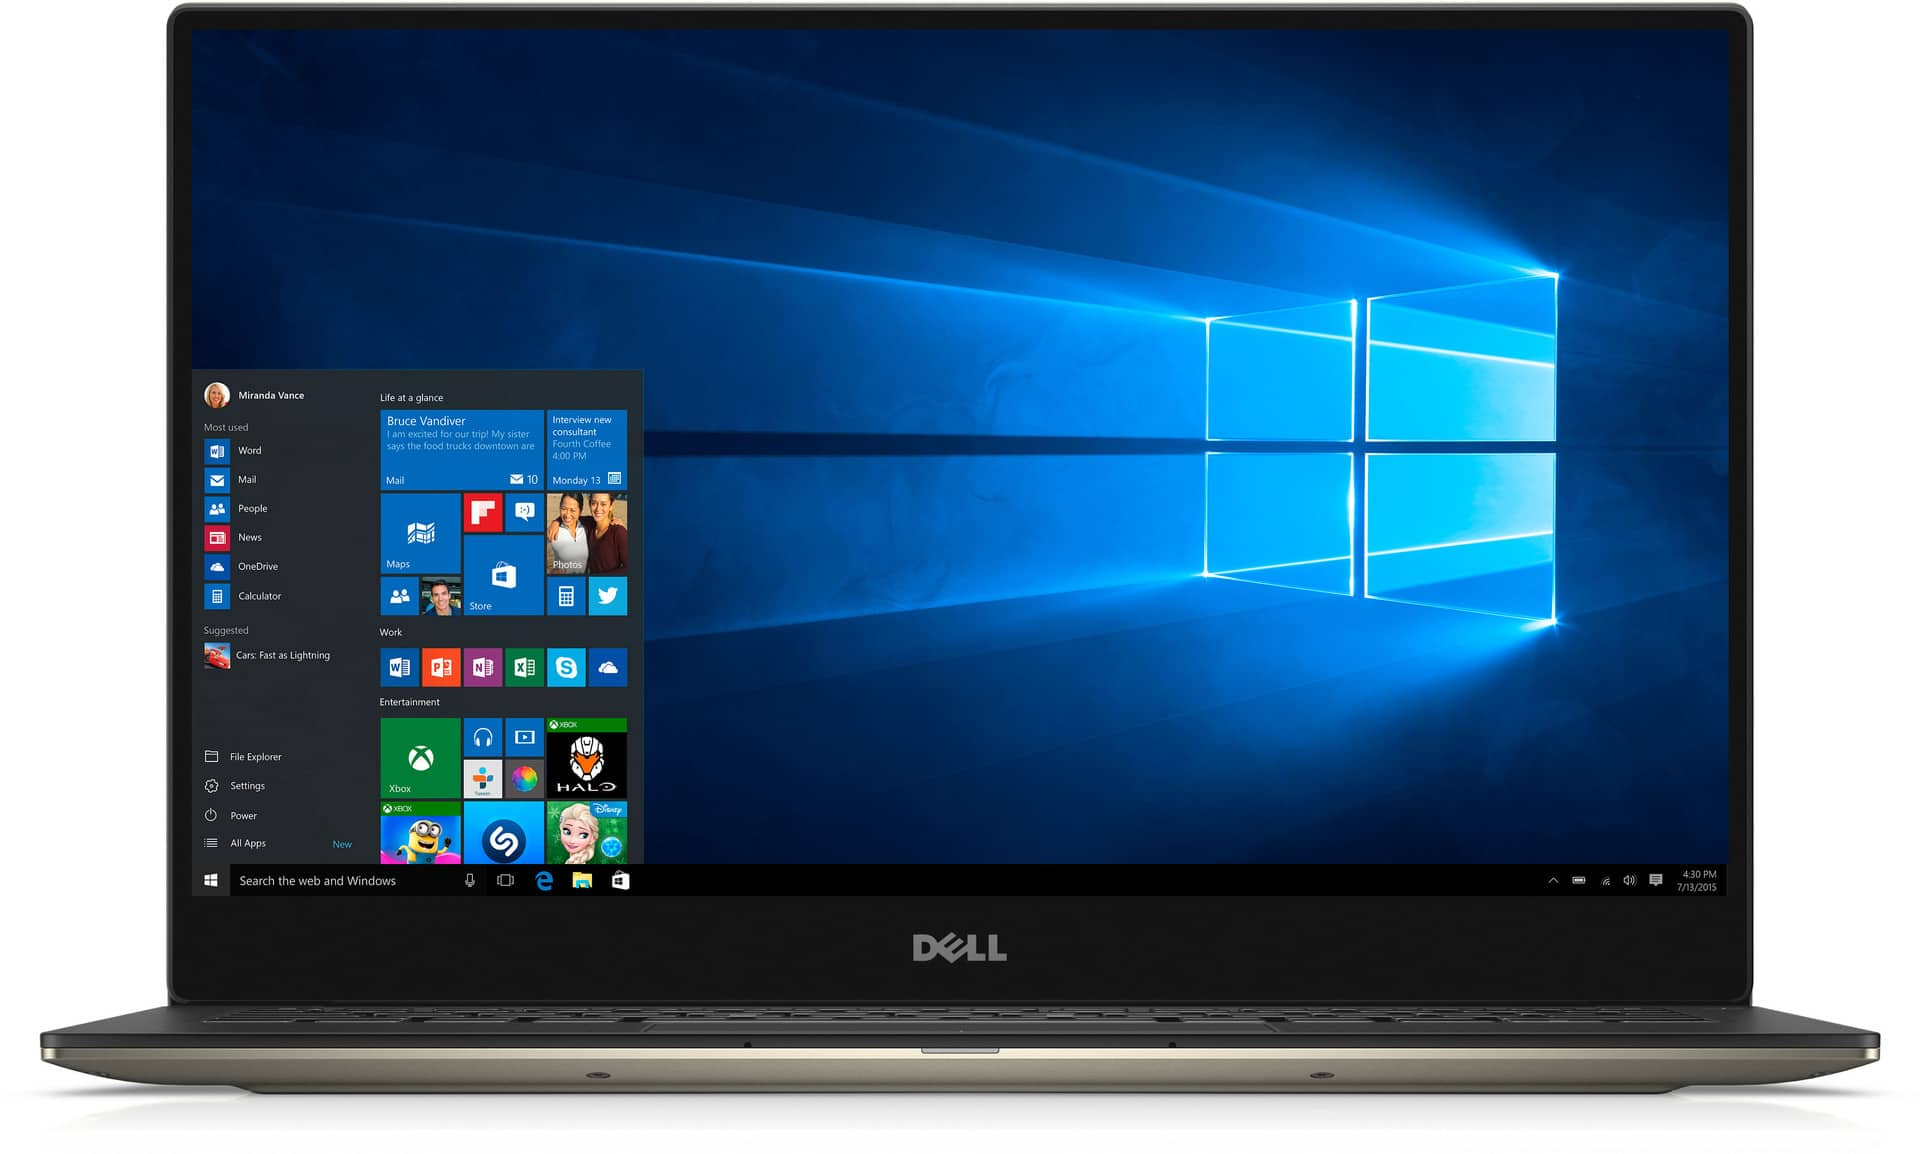 Dell XPS 13 9350 Laptop: i7-6560U, 256GB PCIe SSD, 3200x1800, Iris 540 GPU  $1100 After $100 SD Rebate + Free S&H